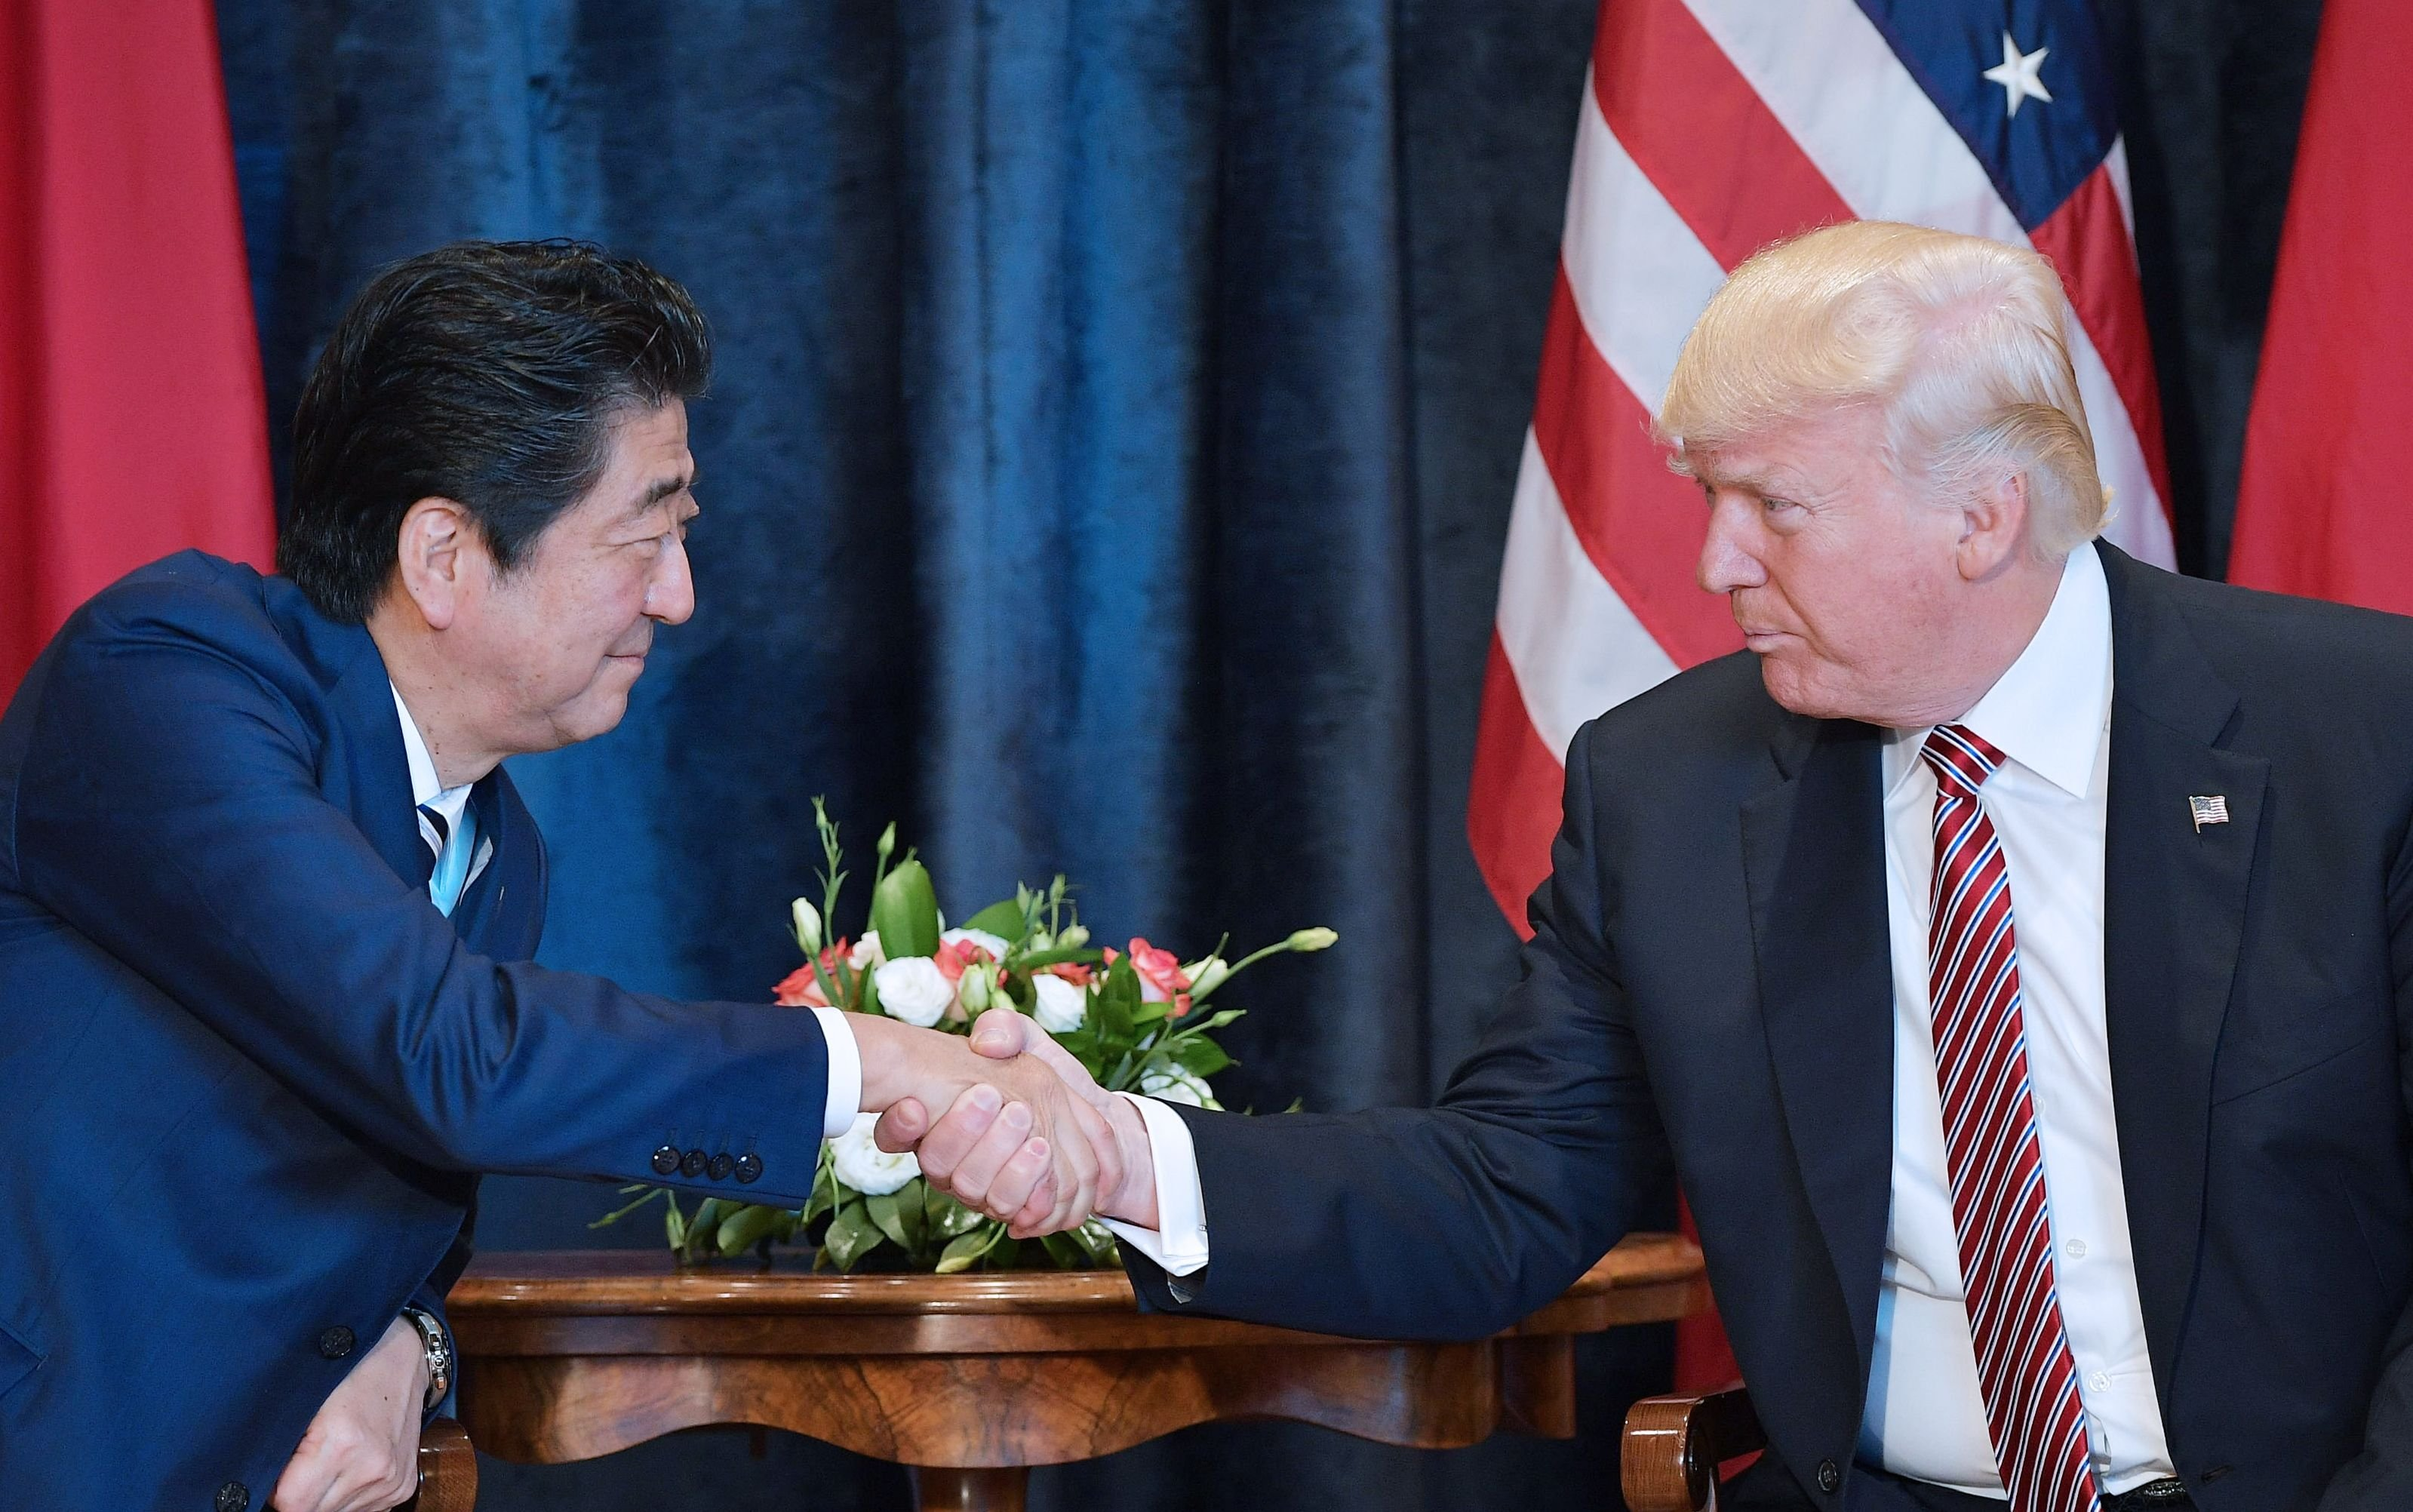 President Donald Trump shakes hands with Japanese Prime Minister Shinzo Abe during a bilateral meeting at the Villa Diodoro on the sidelines of the Summit of the Heads of State and of Government of the G7, the group of most industrialized economies, plus the European Union, on May 26, 2017 in Taormina, Sicily.